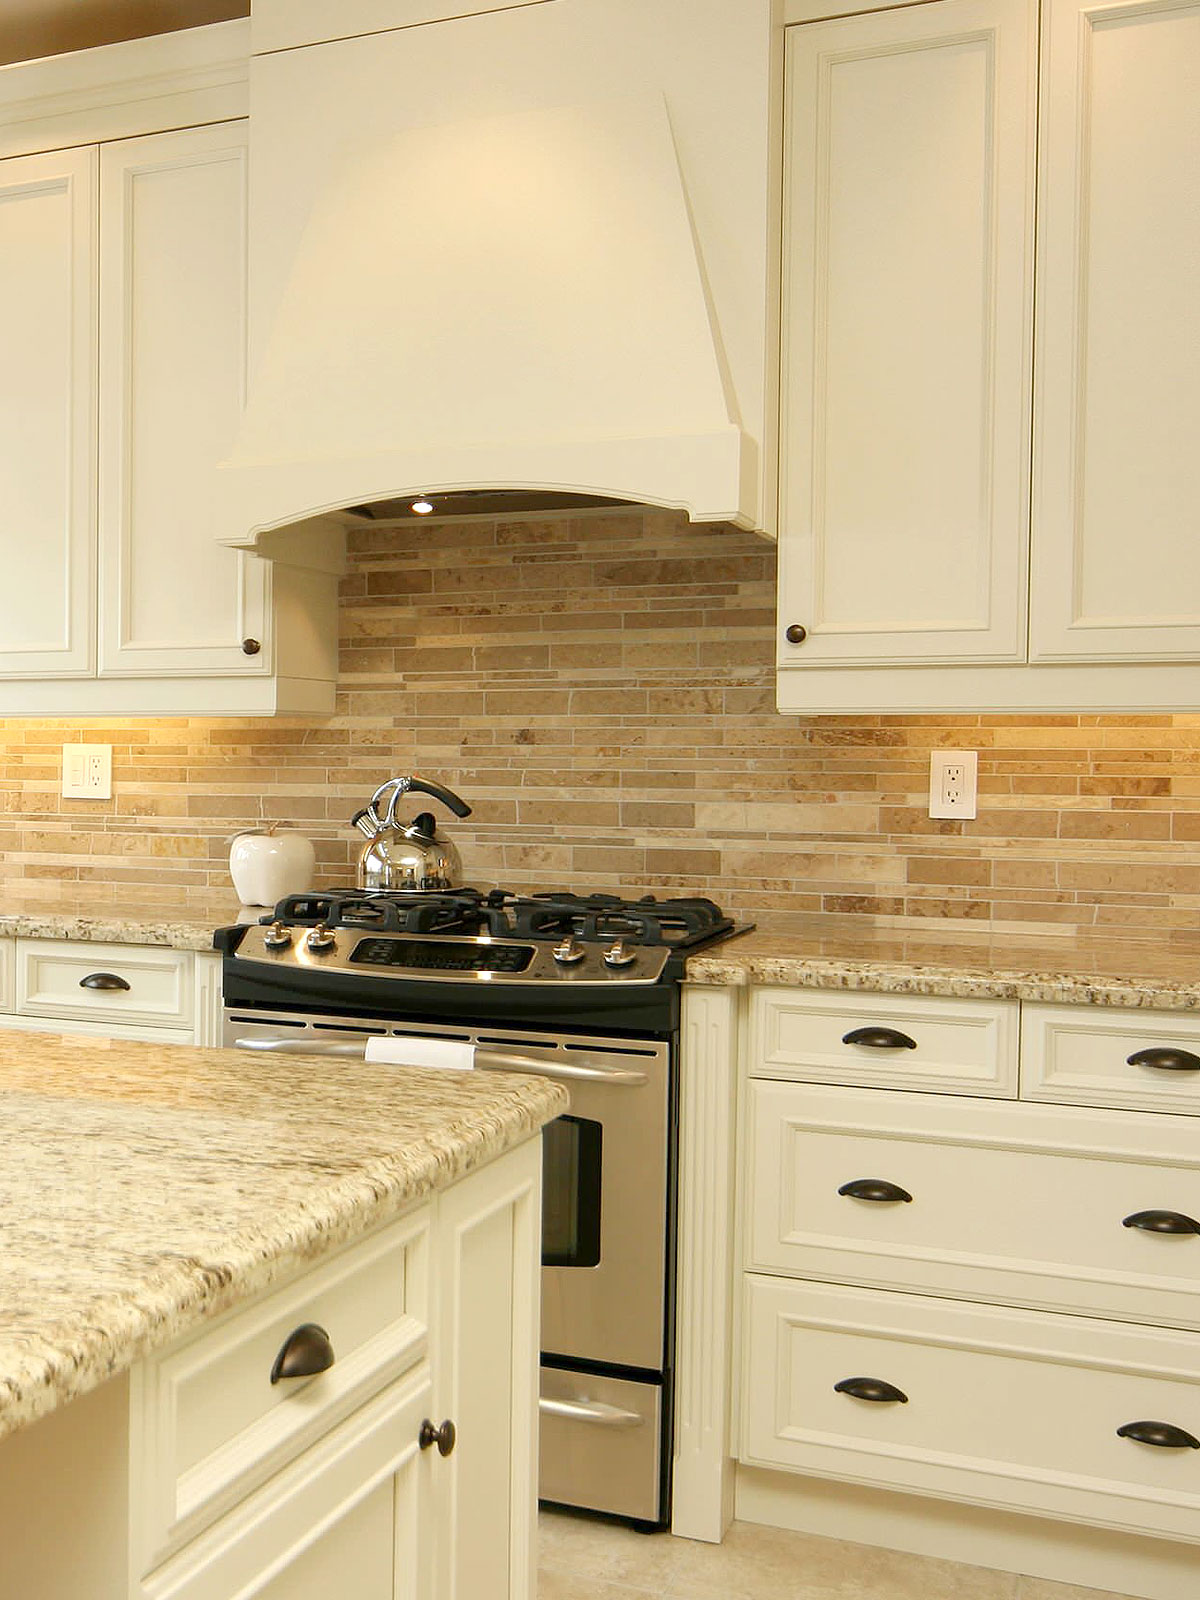 Image of: 19 Travertine Subway Tile Backsplash Designs Ideas Natural Look